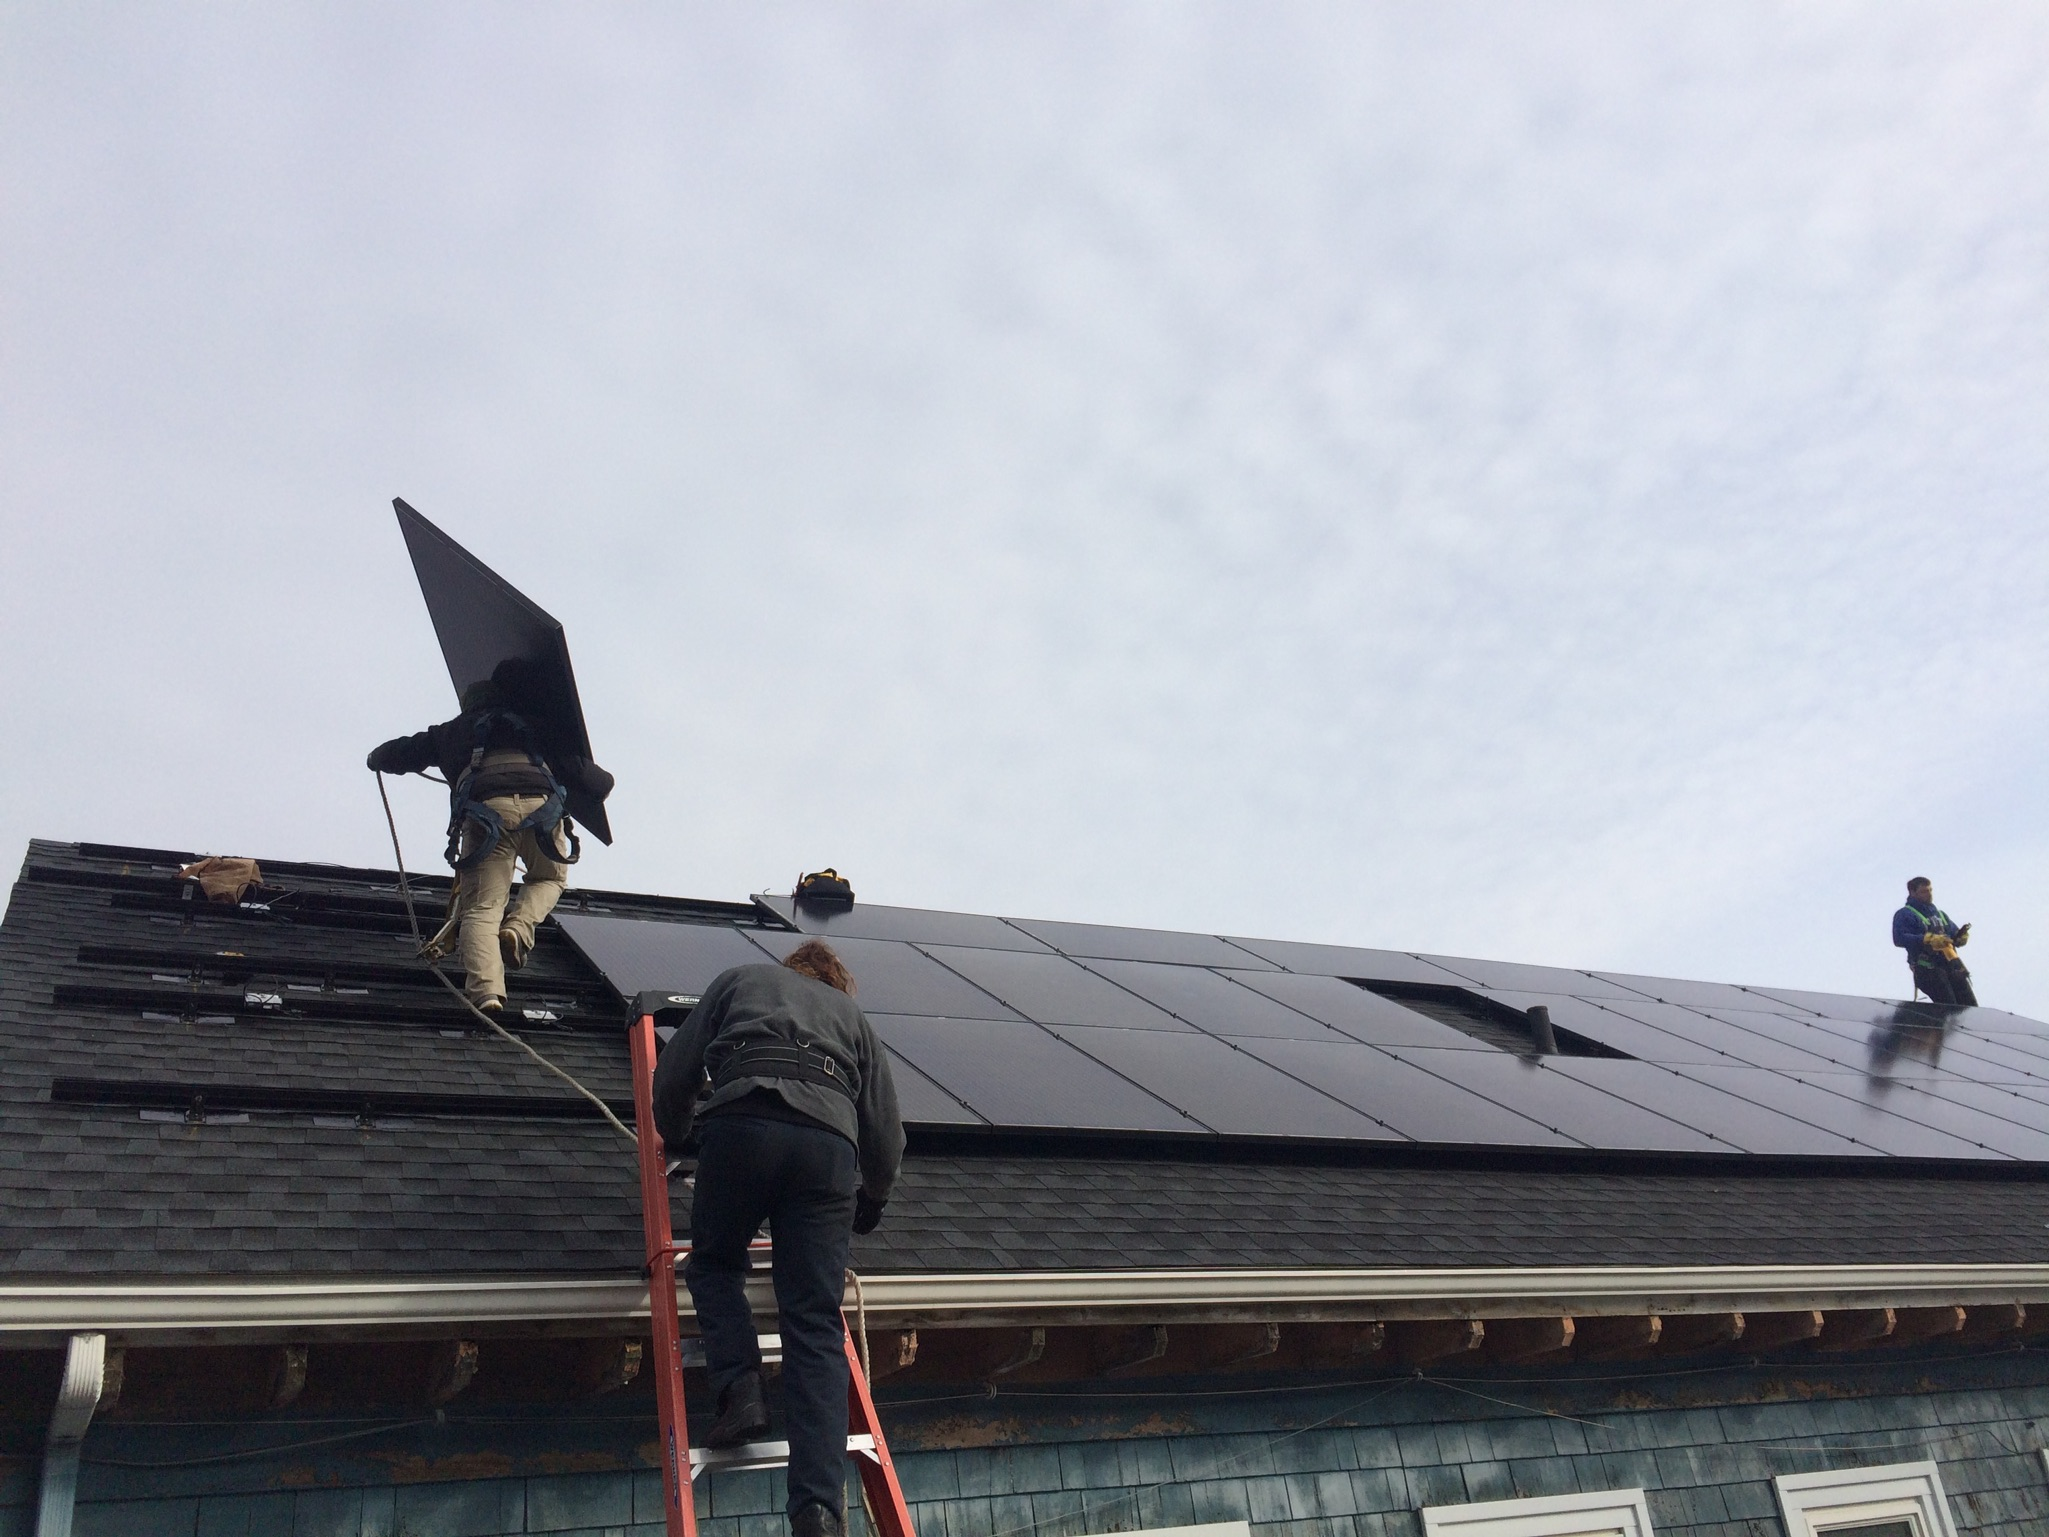 Installation of solar panels at Congregation Eitz Chayim in Cambridge, MA. Photo courtesy of Grunebaum.